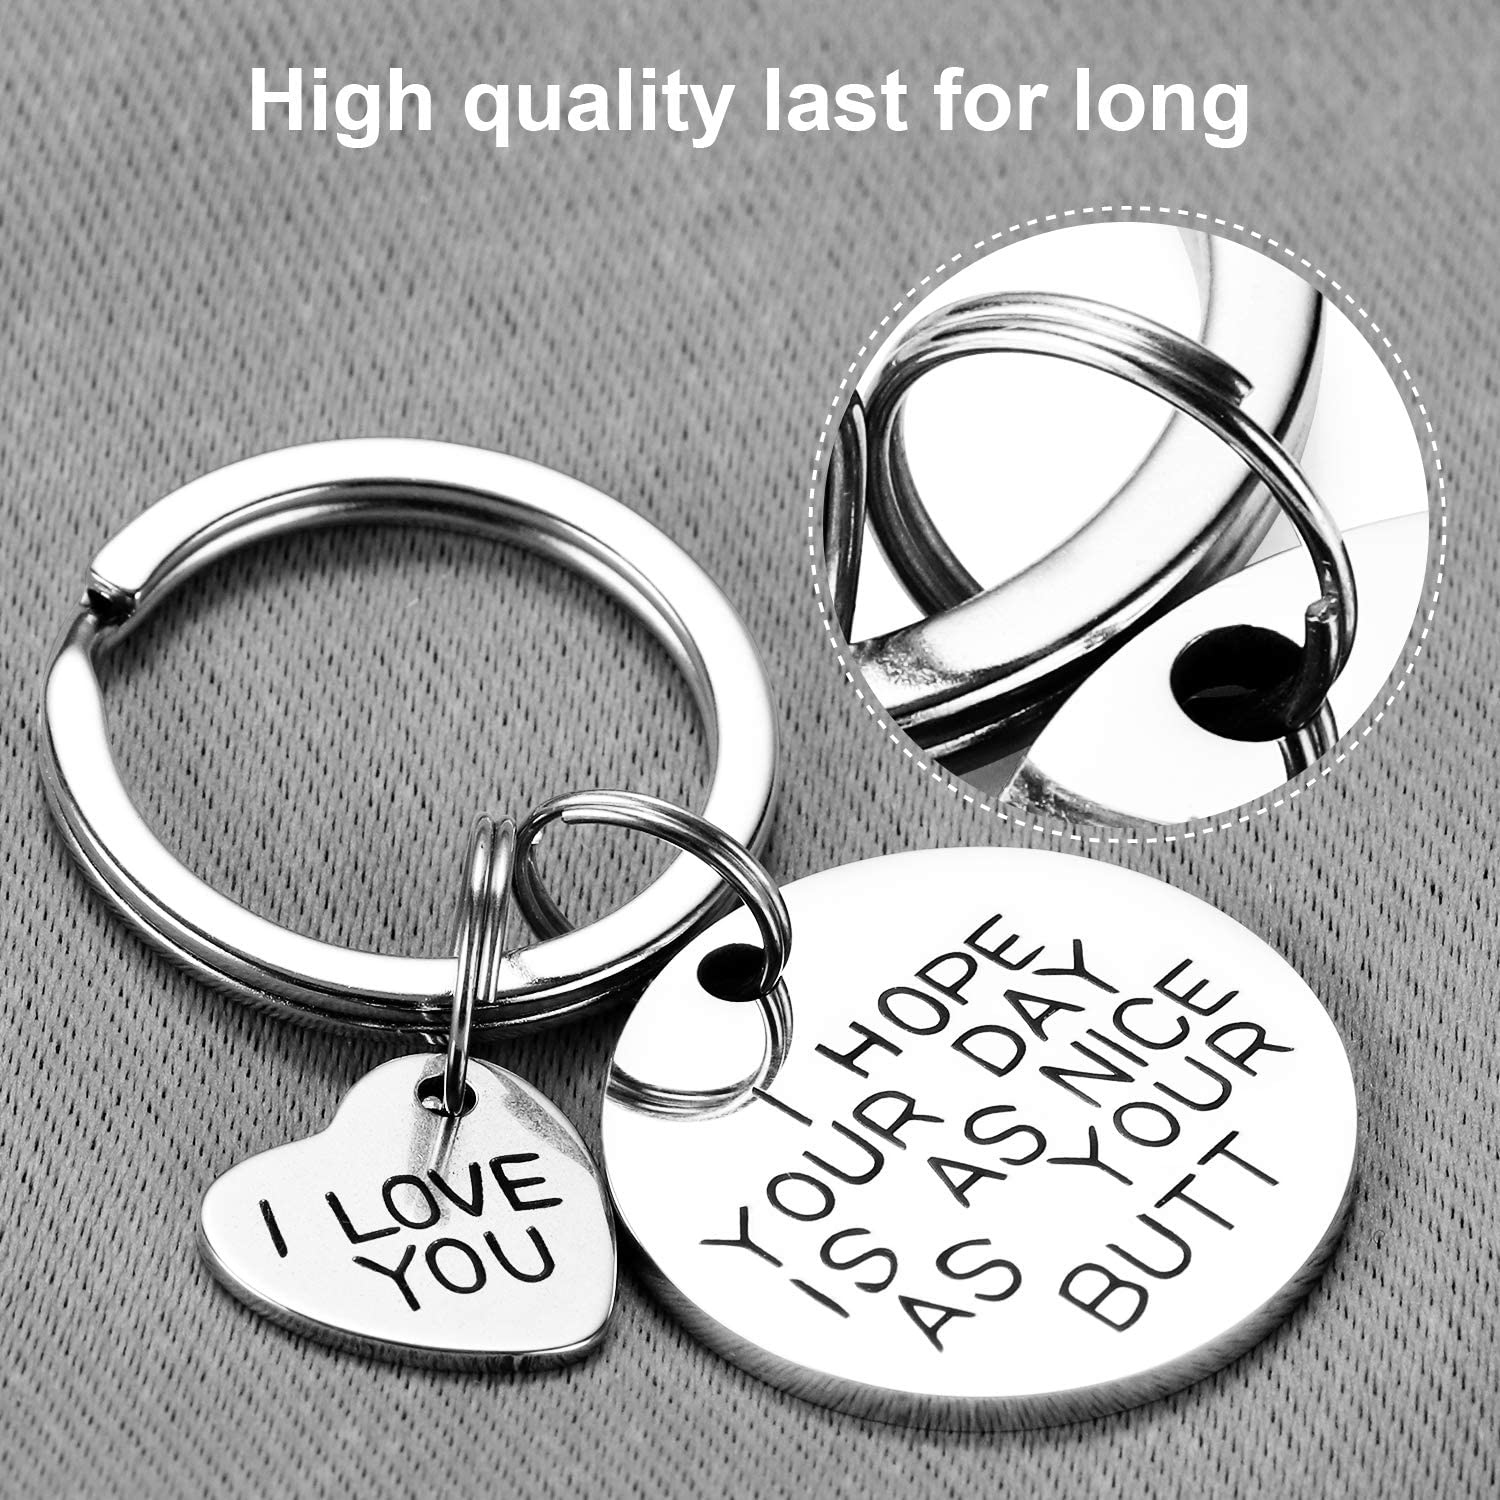 Funny Birthday Keychain Gift for Her Nguenon Novelty Keyring Gift Ideas for Birthday Husband ValentineS Day Him,BFF Wife I Hope Your Day is As Nice As Your Butt Thanksgiving Christmas Gift